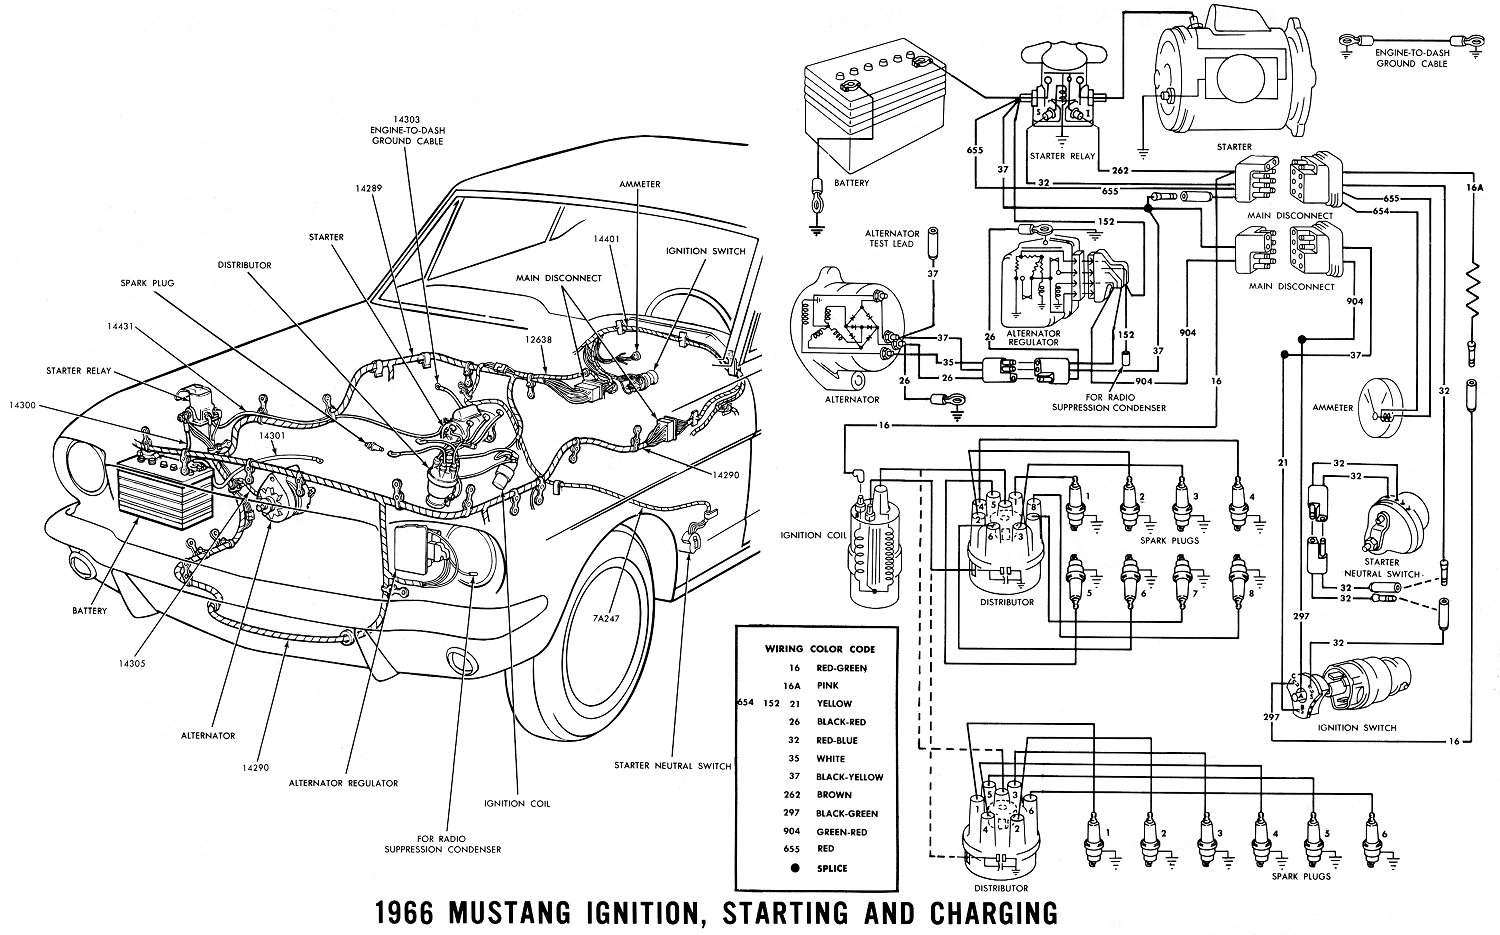 Ford Mustang Diagram Wiring Schemes Car Engine Parts 1966 Diagrams Average Joe Restoration 1993 Ignition Starting